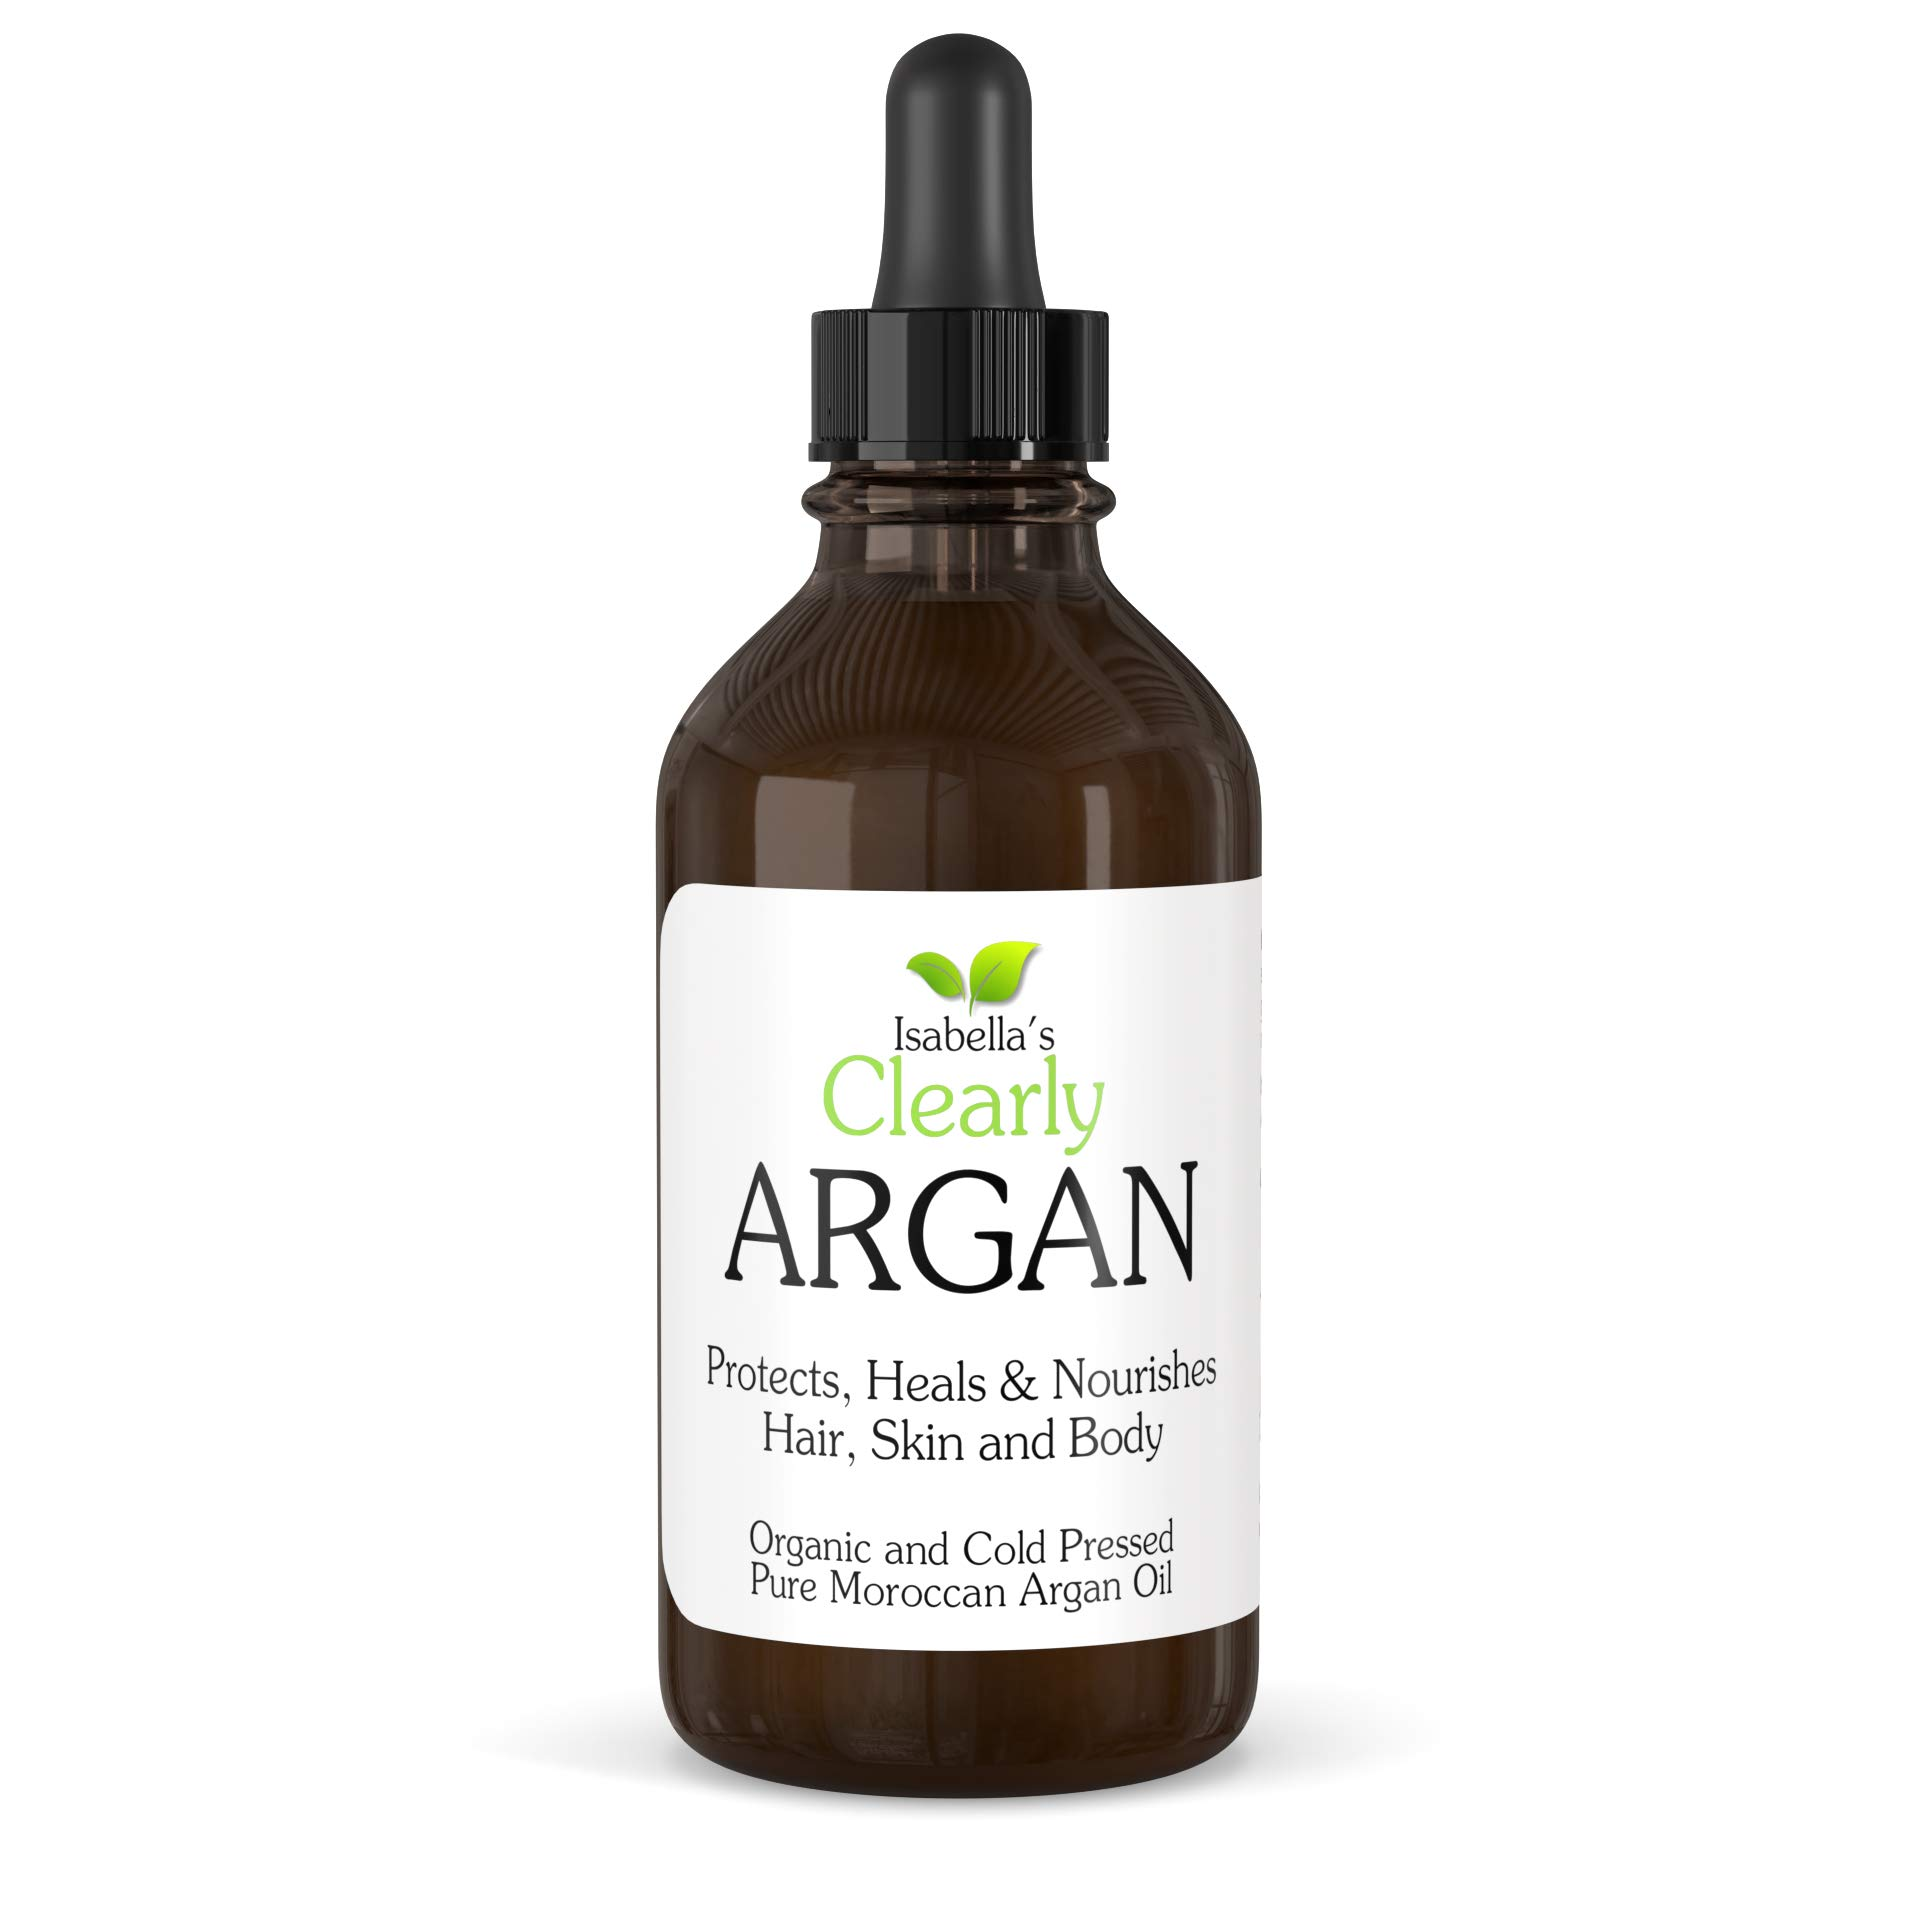 Clearly ARGAN, 100% Pure Organic Moroccan Argan Oil - Anti Aging Cold Pressed Natural Moisturizer for Hair, Skin, Body, Scalp, Nails. Healthy Hair Growth and Dry Skin Treatment (4 Oz)